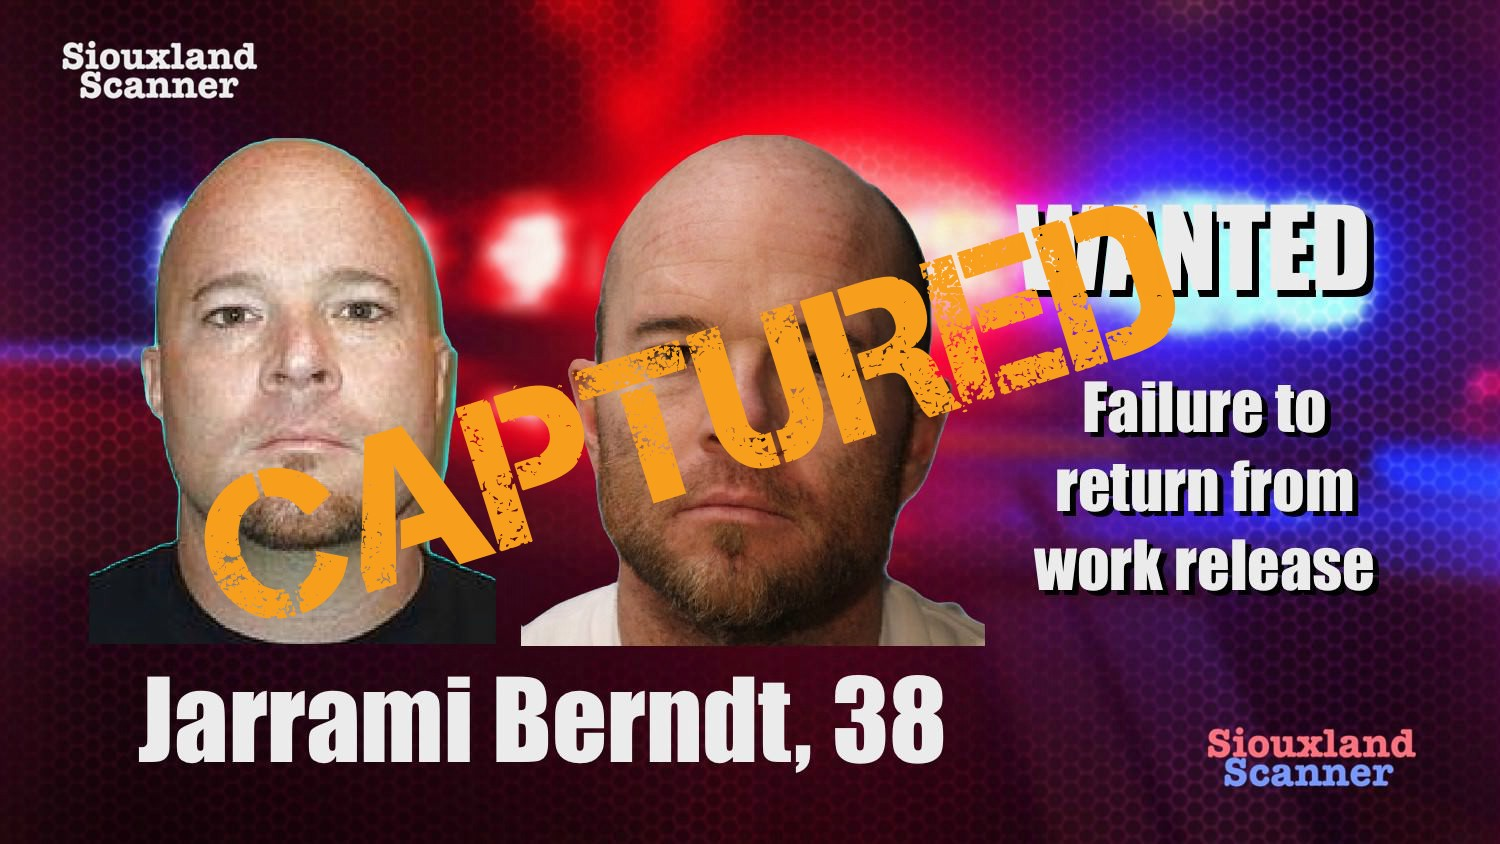 CAPTURED Jarrami Berndt failure to return from work release while serving time for manslaughter